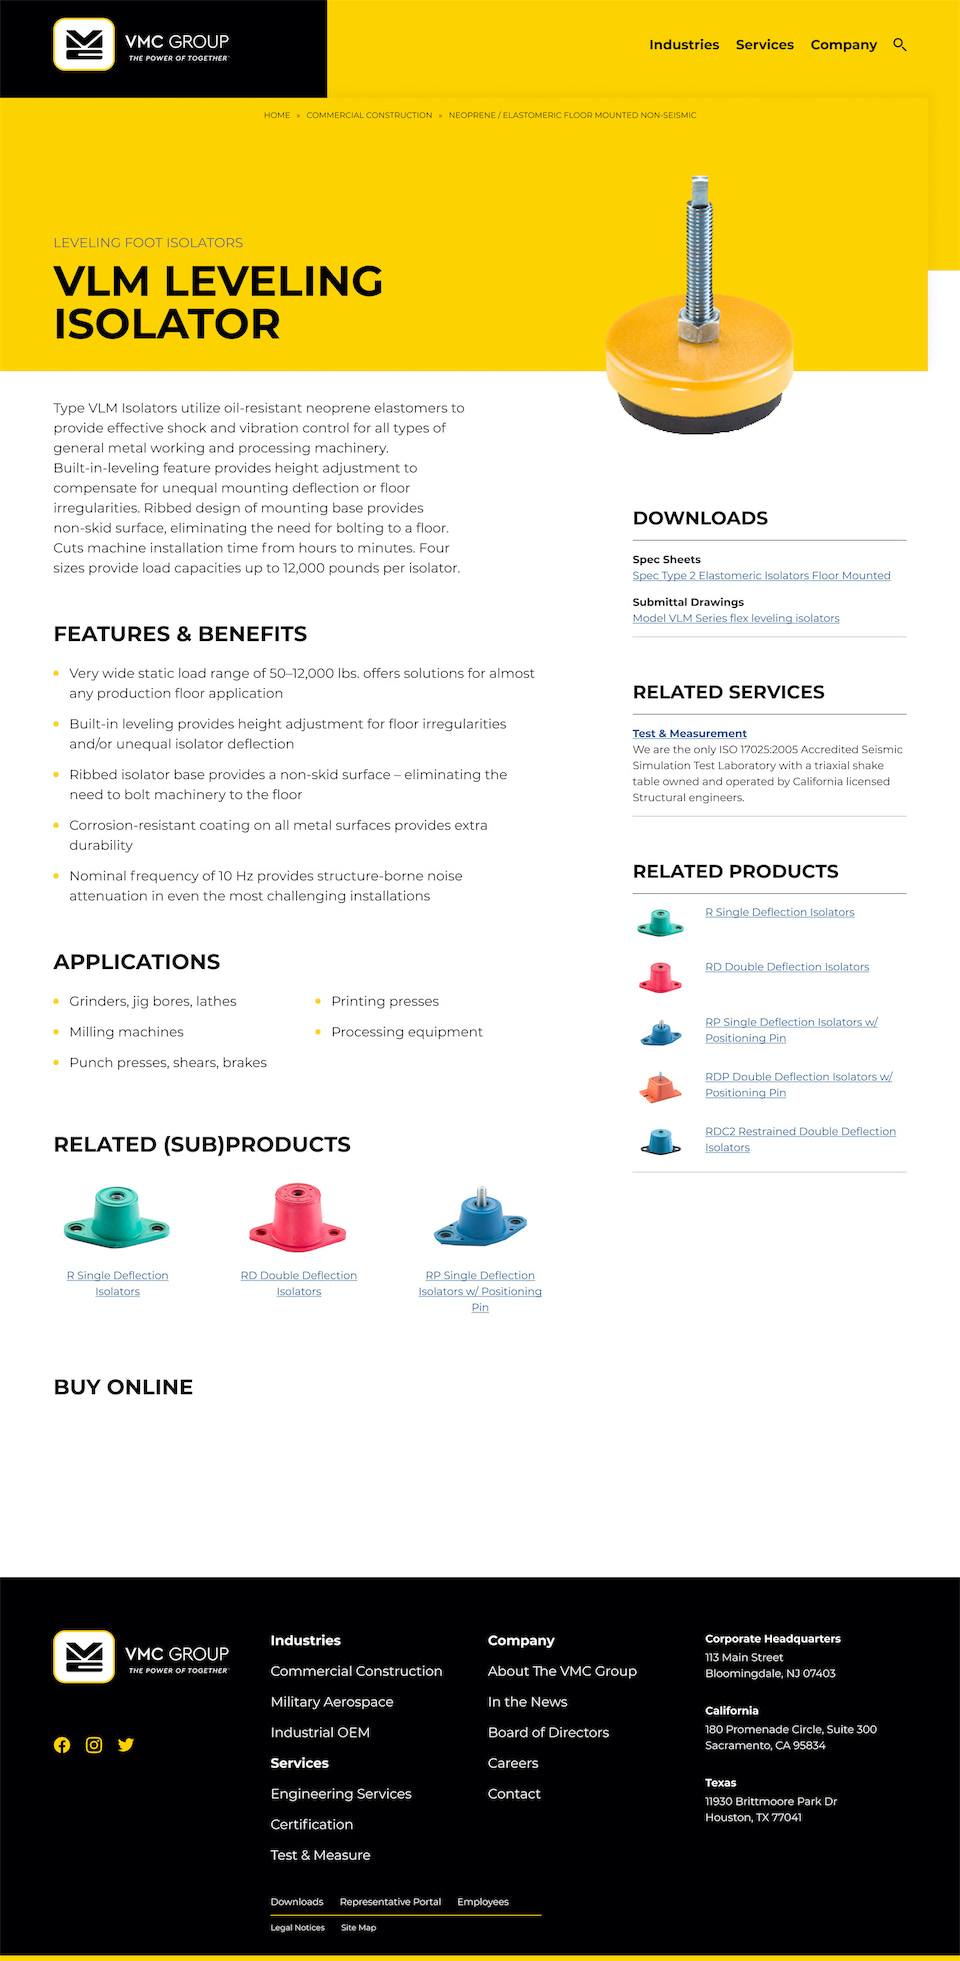 VMC Group Product Page